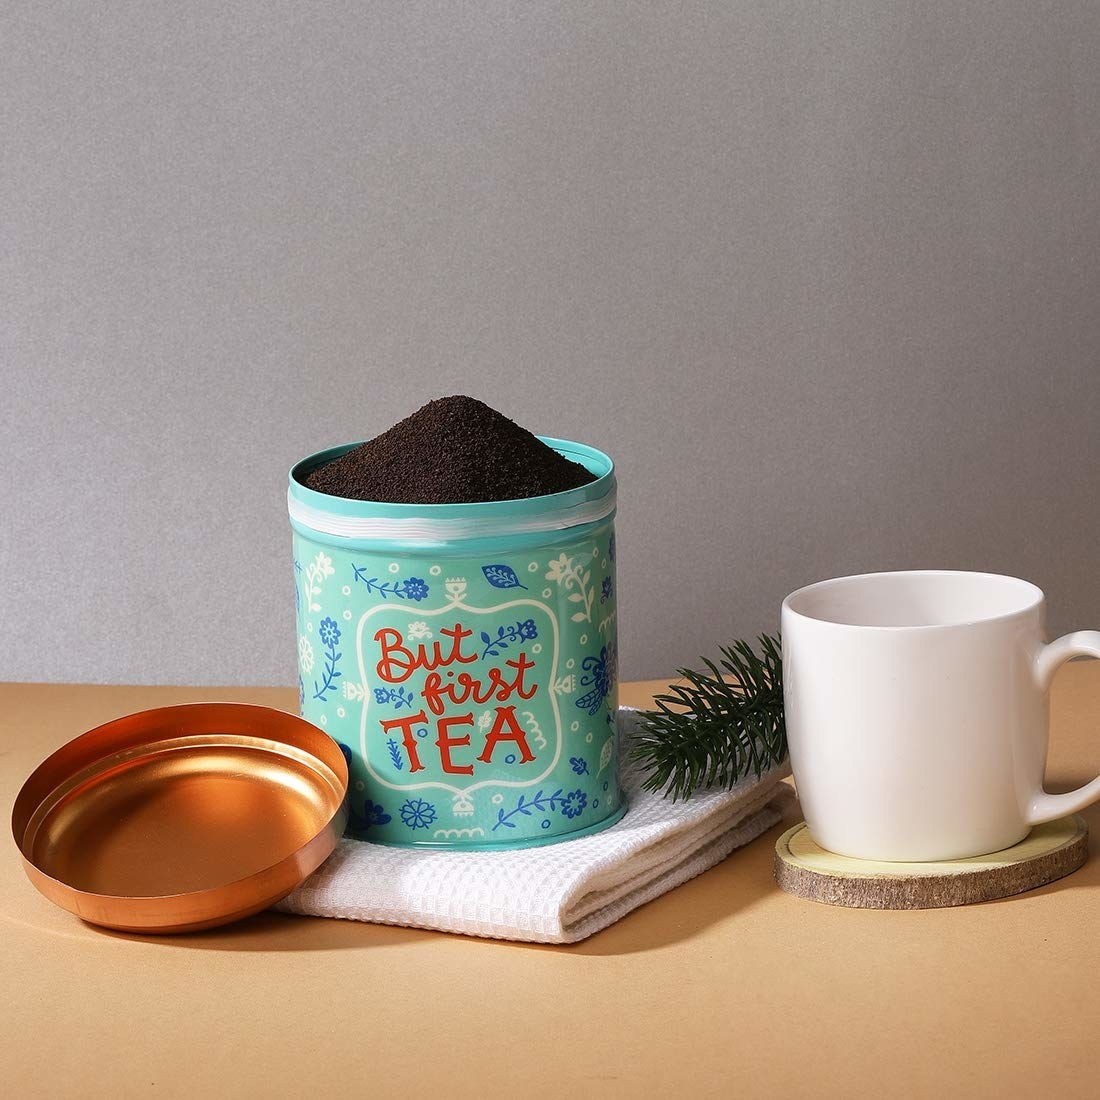 A teal coloured tin with a copper lid with doodles of leaves and flowers in blue and white and text in red that says 'But first tea.'